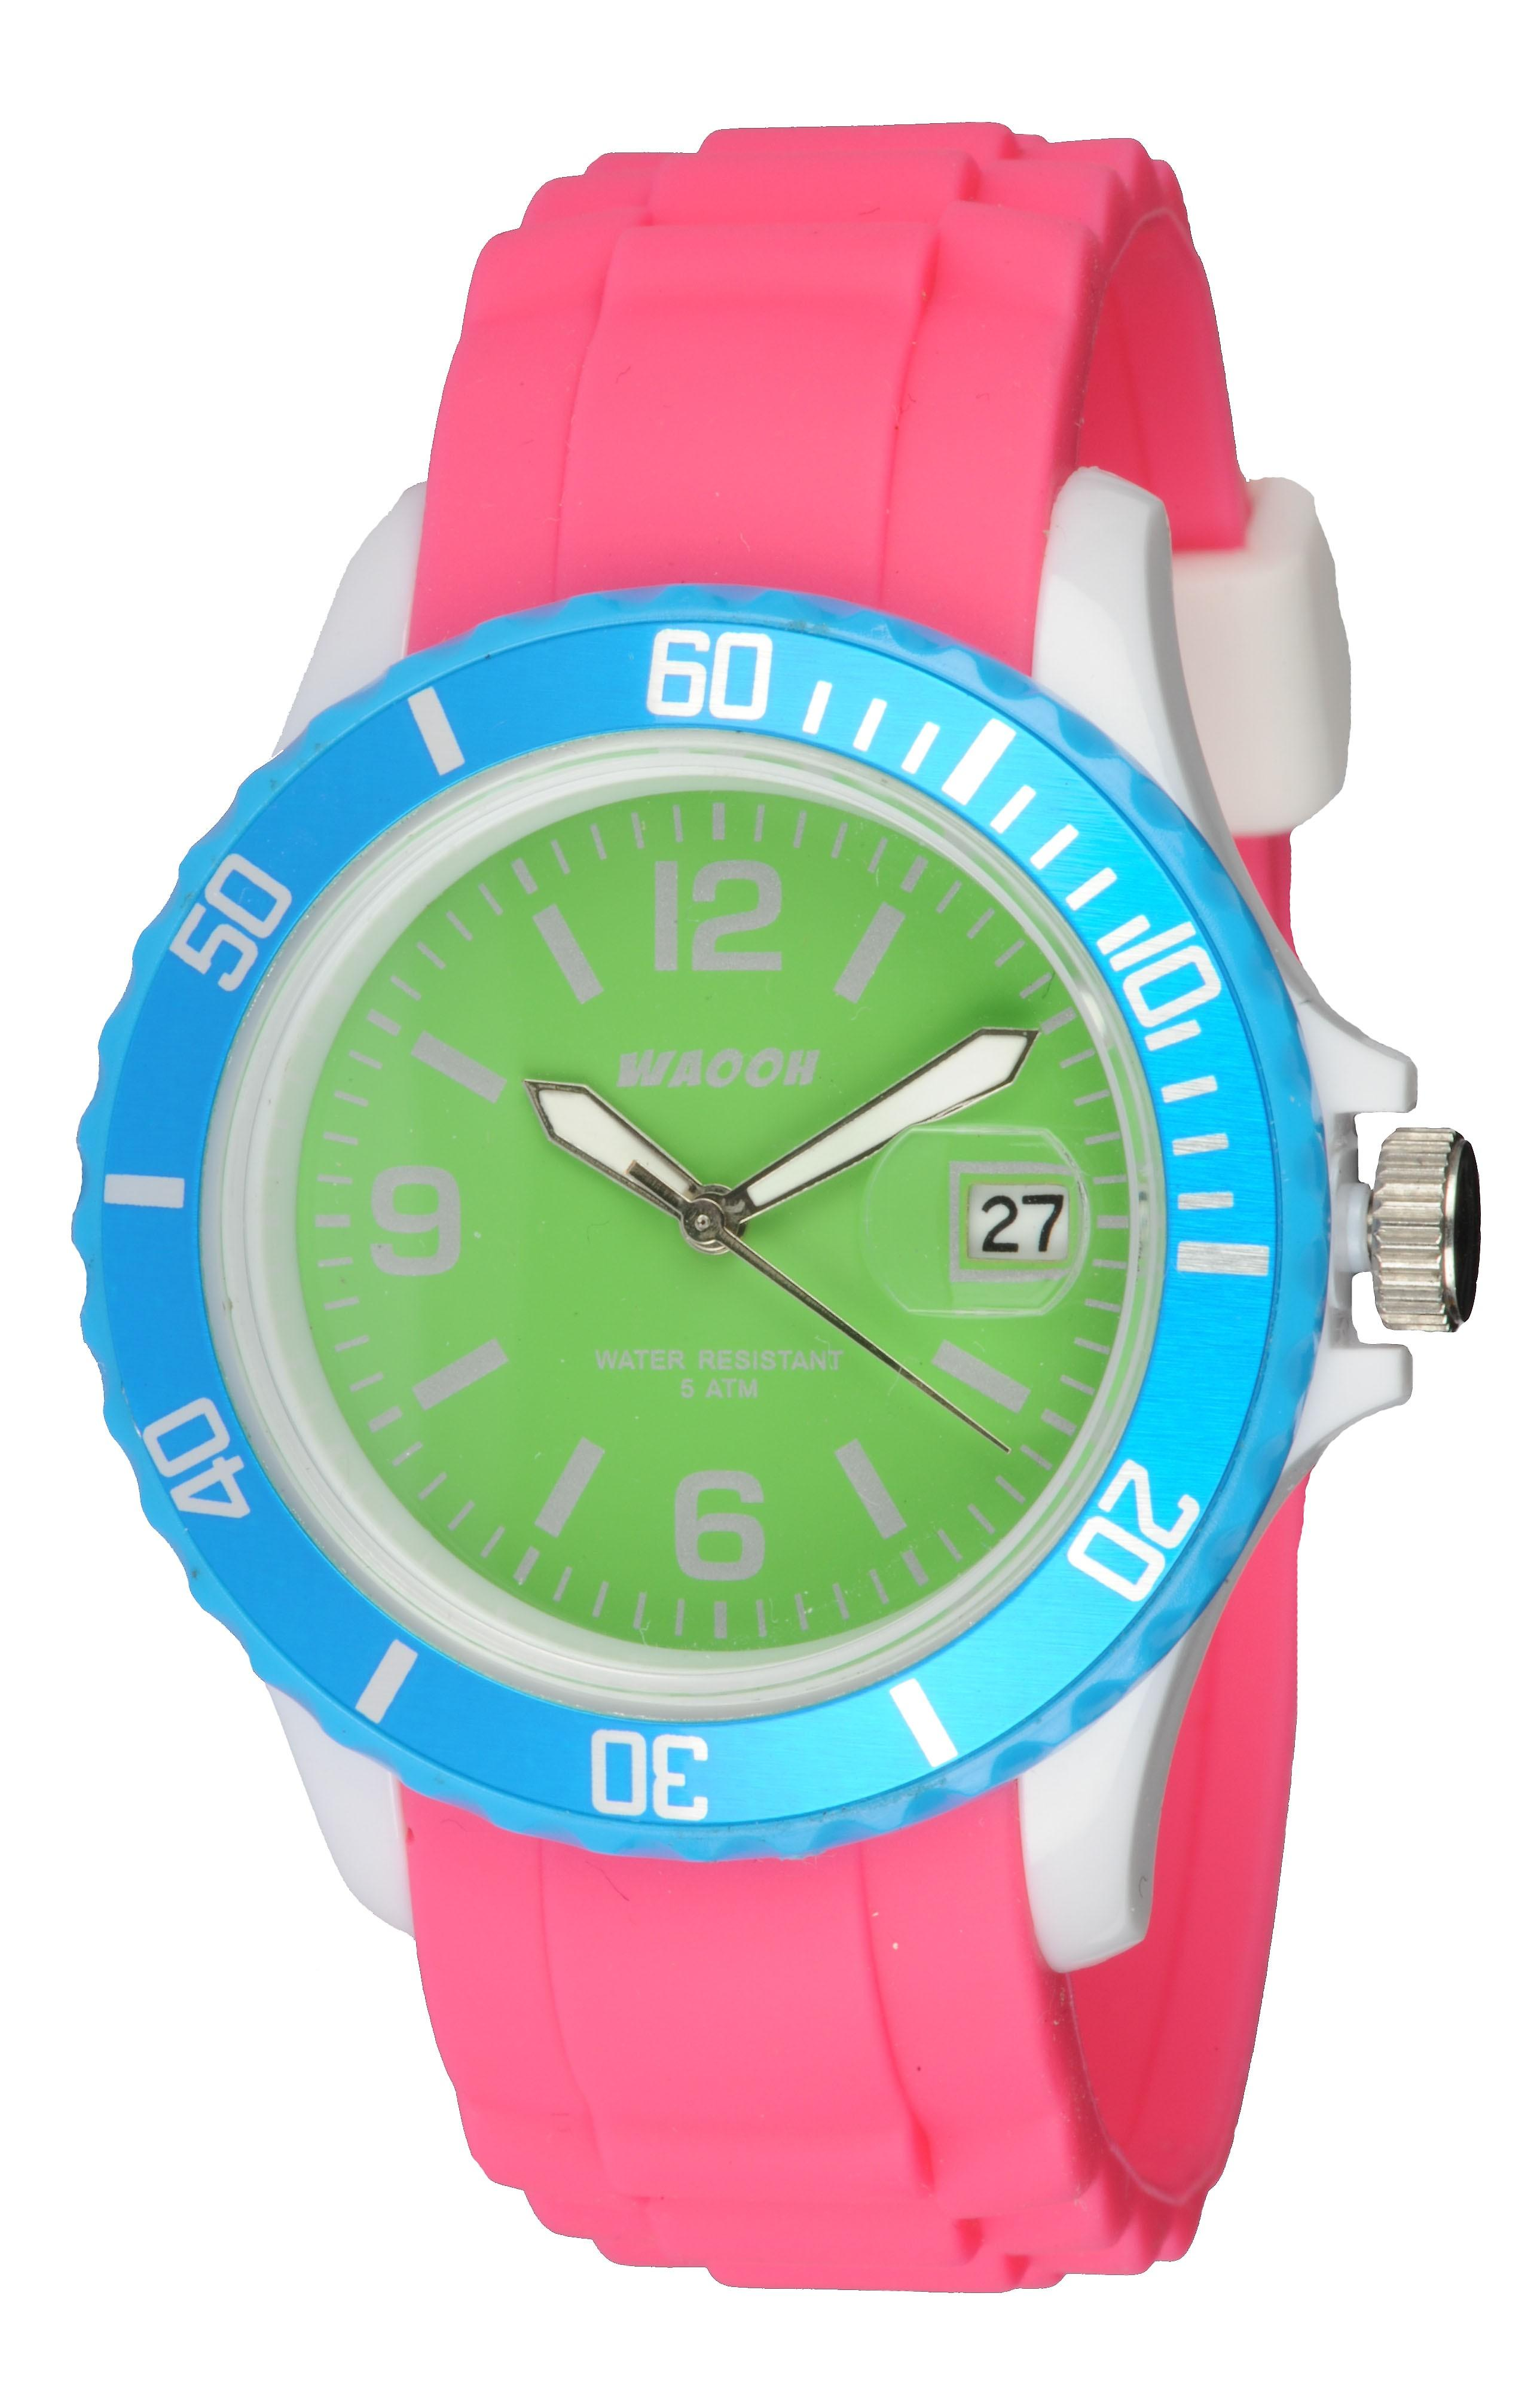 Waooh - Watch Monaco38 - white & turquoise Multicolor Green